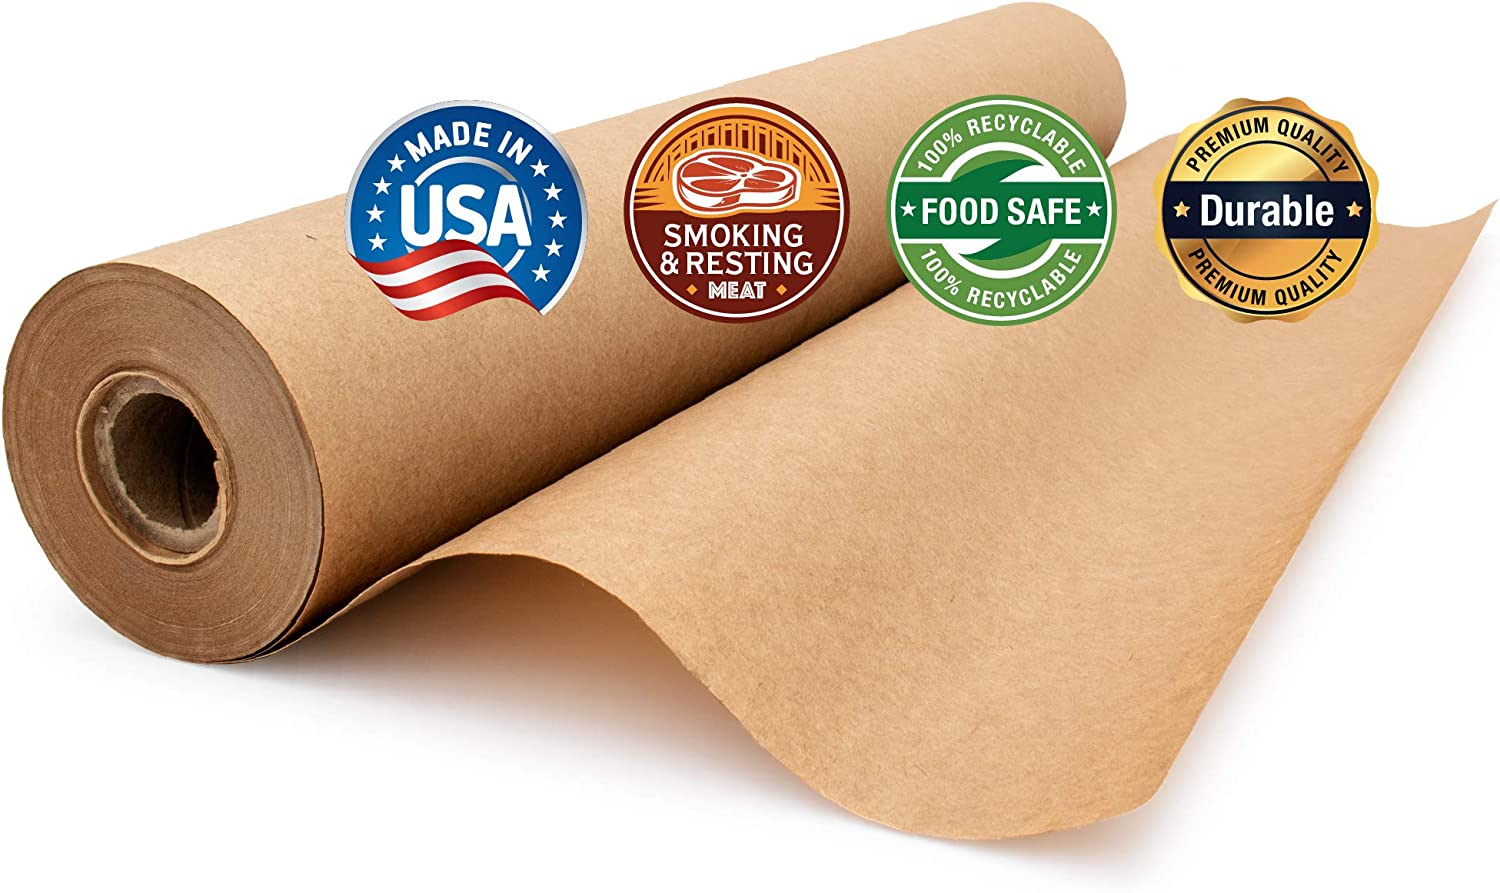 Brown Butcher Paper Roll Unwaxed /& Uncoated for Smoking /& Resting Meat by Paper Pros Unbleached 17.75 inches x 100 feet